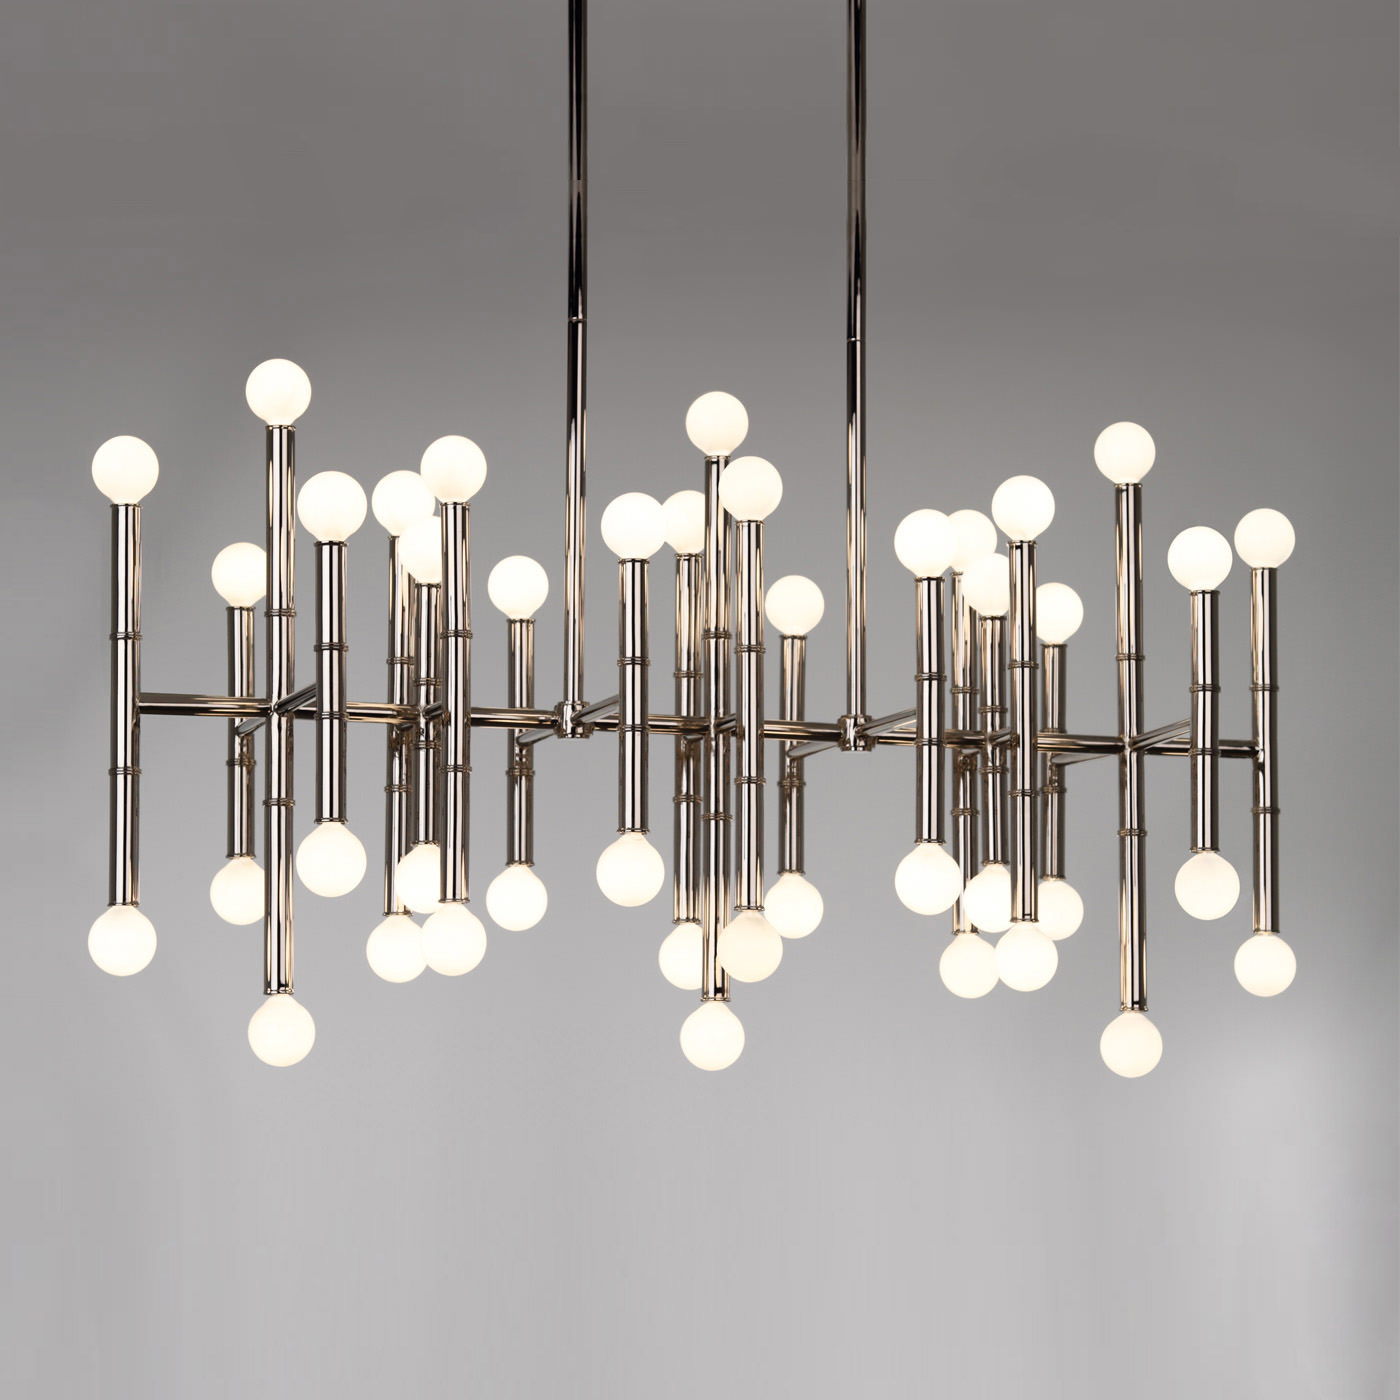 Modern Chandeliers Contemporary Chandelier Lighting  Lightology